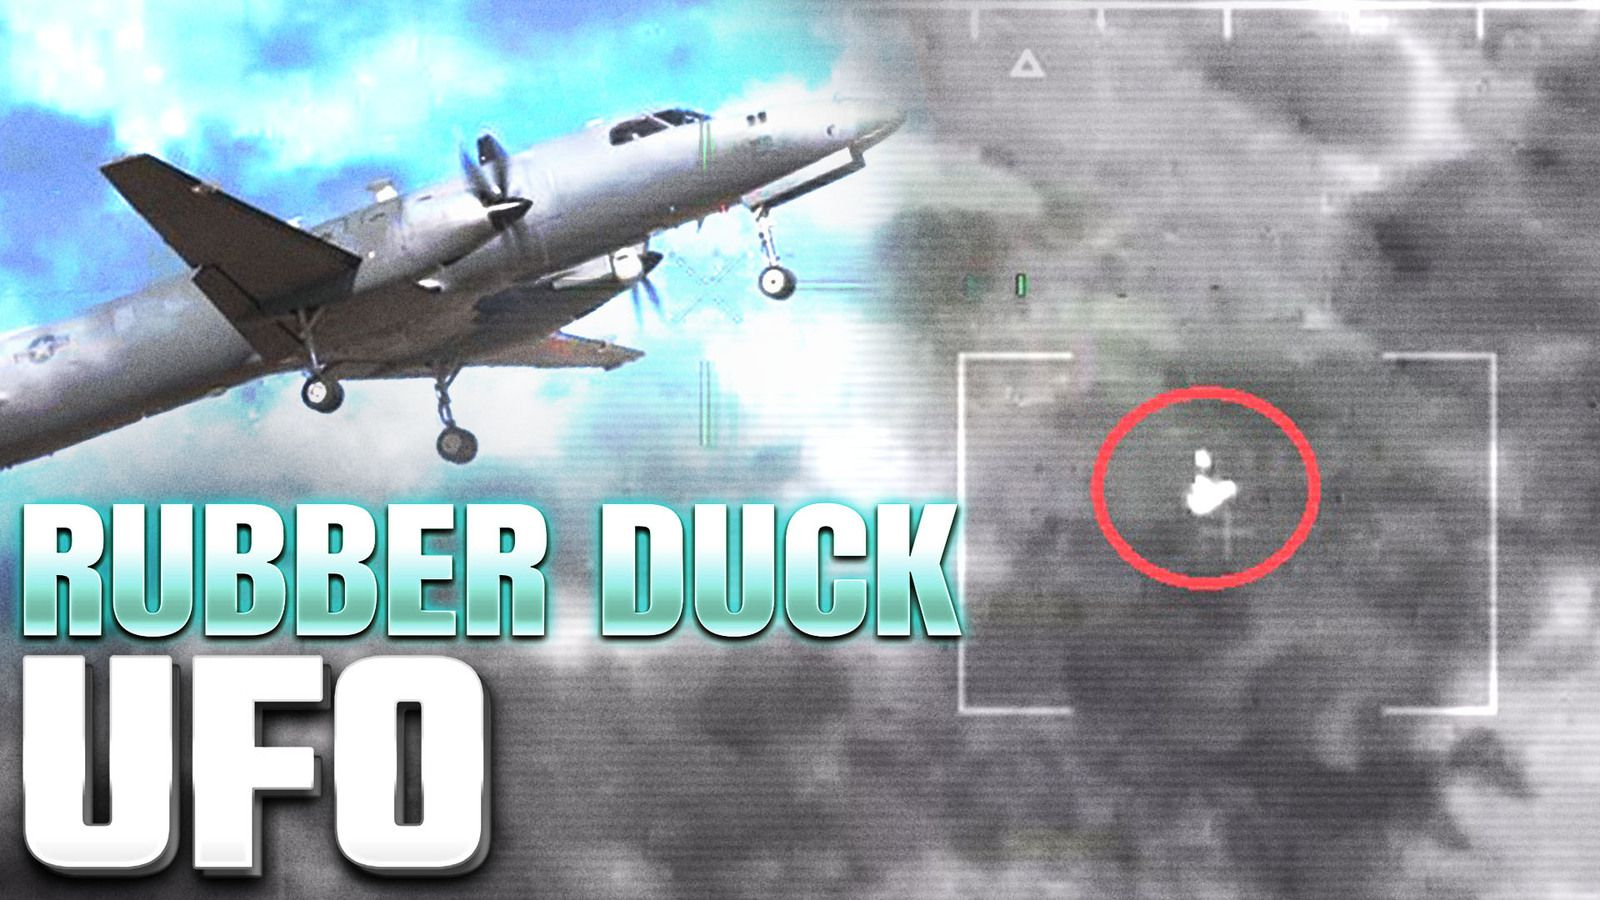 """Leaked US Spy Plane footage shows """"Rubber Duck Shaped UFO"""" 👽"""